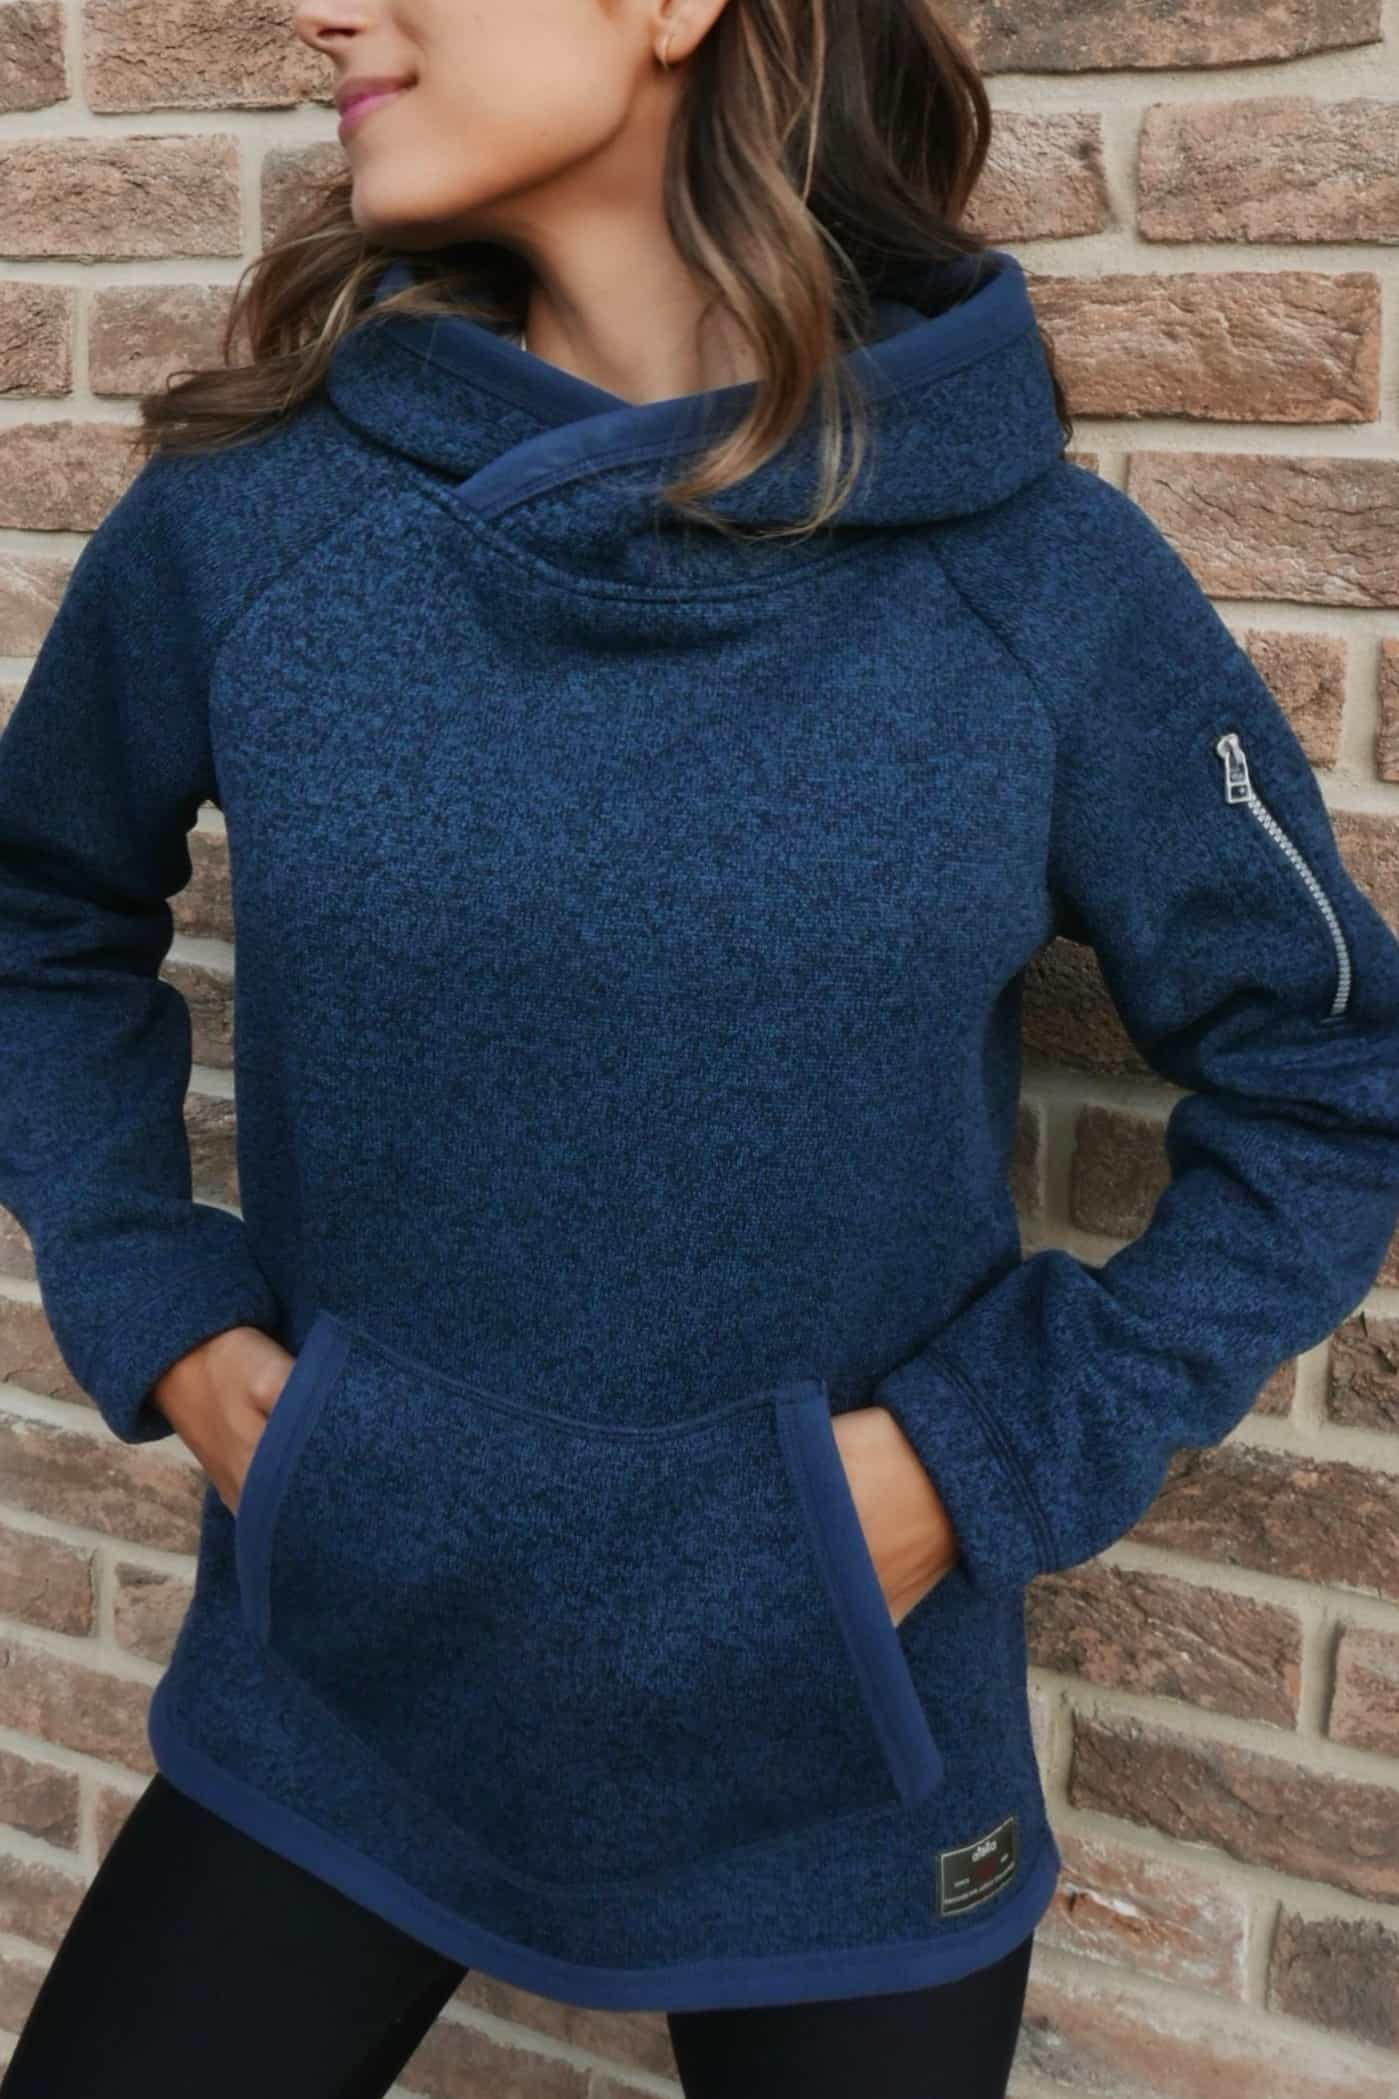 Unisex Leisure Jumper